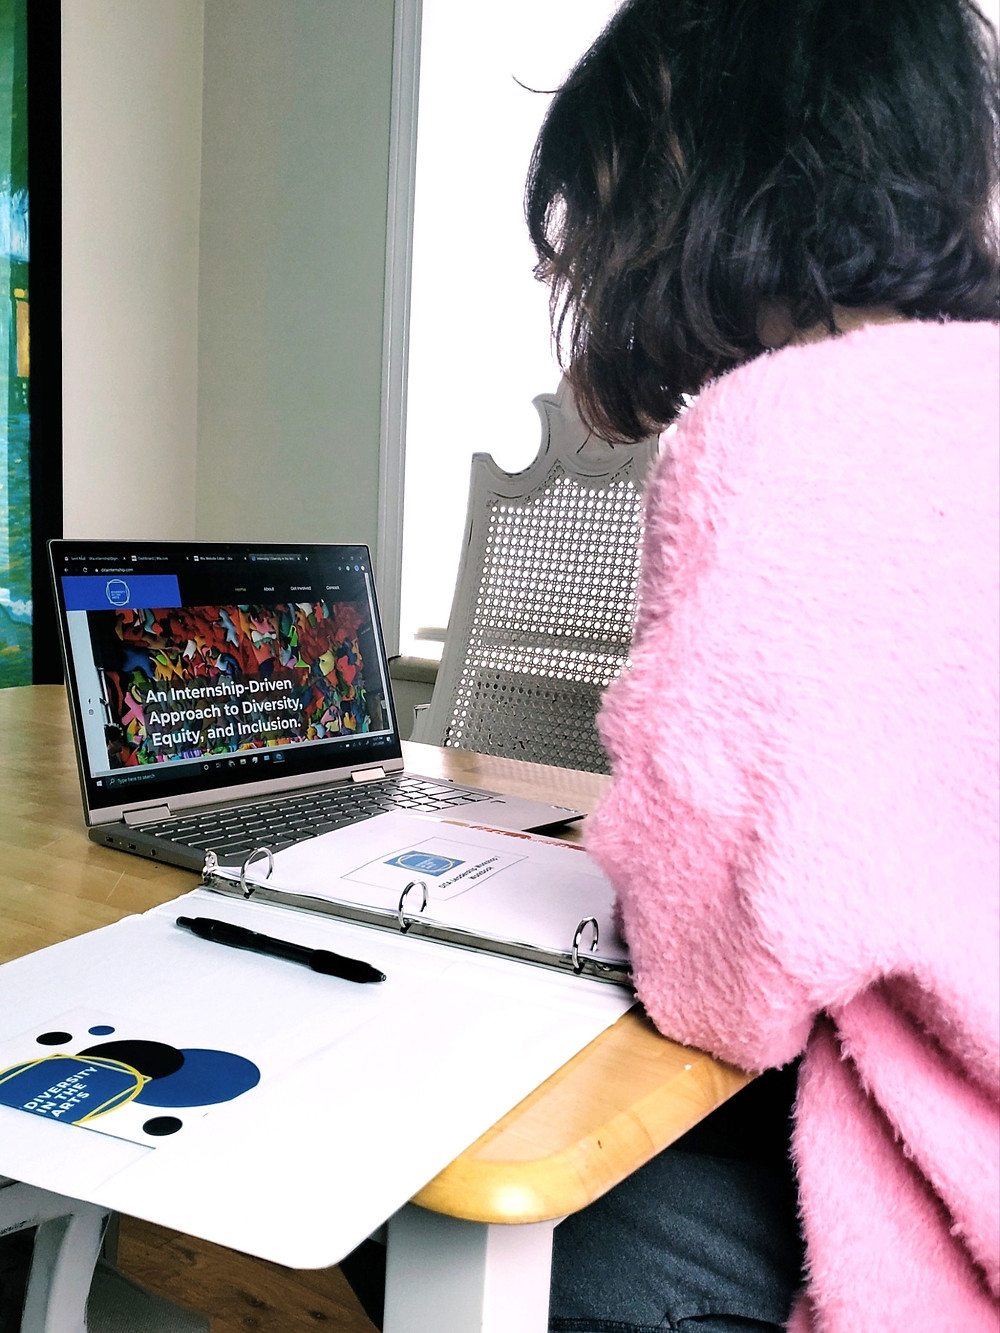 An individual sits at a kitchen table with a DITA binder in front of them along with a laptop open to the DITA website.